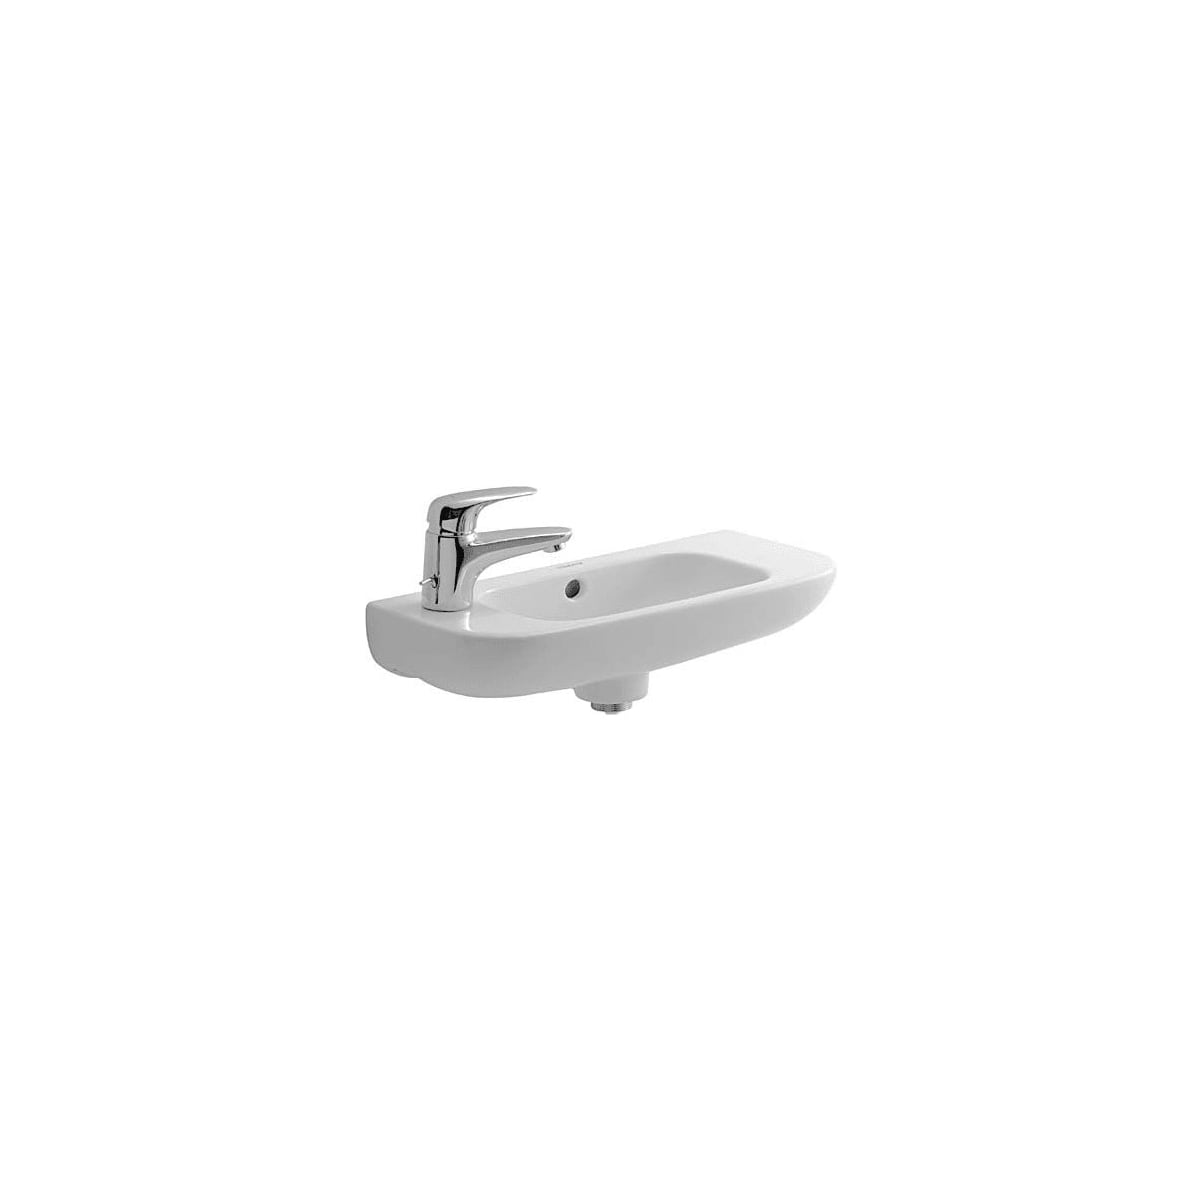 Duravit 07065000092 White Glazed Underside D Code 19 5 8 Specialty Ceramic Wall Mounted Bathroom Sink With Overflow And 1 Faucet Hole On Left Faucet Com